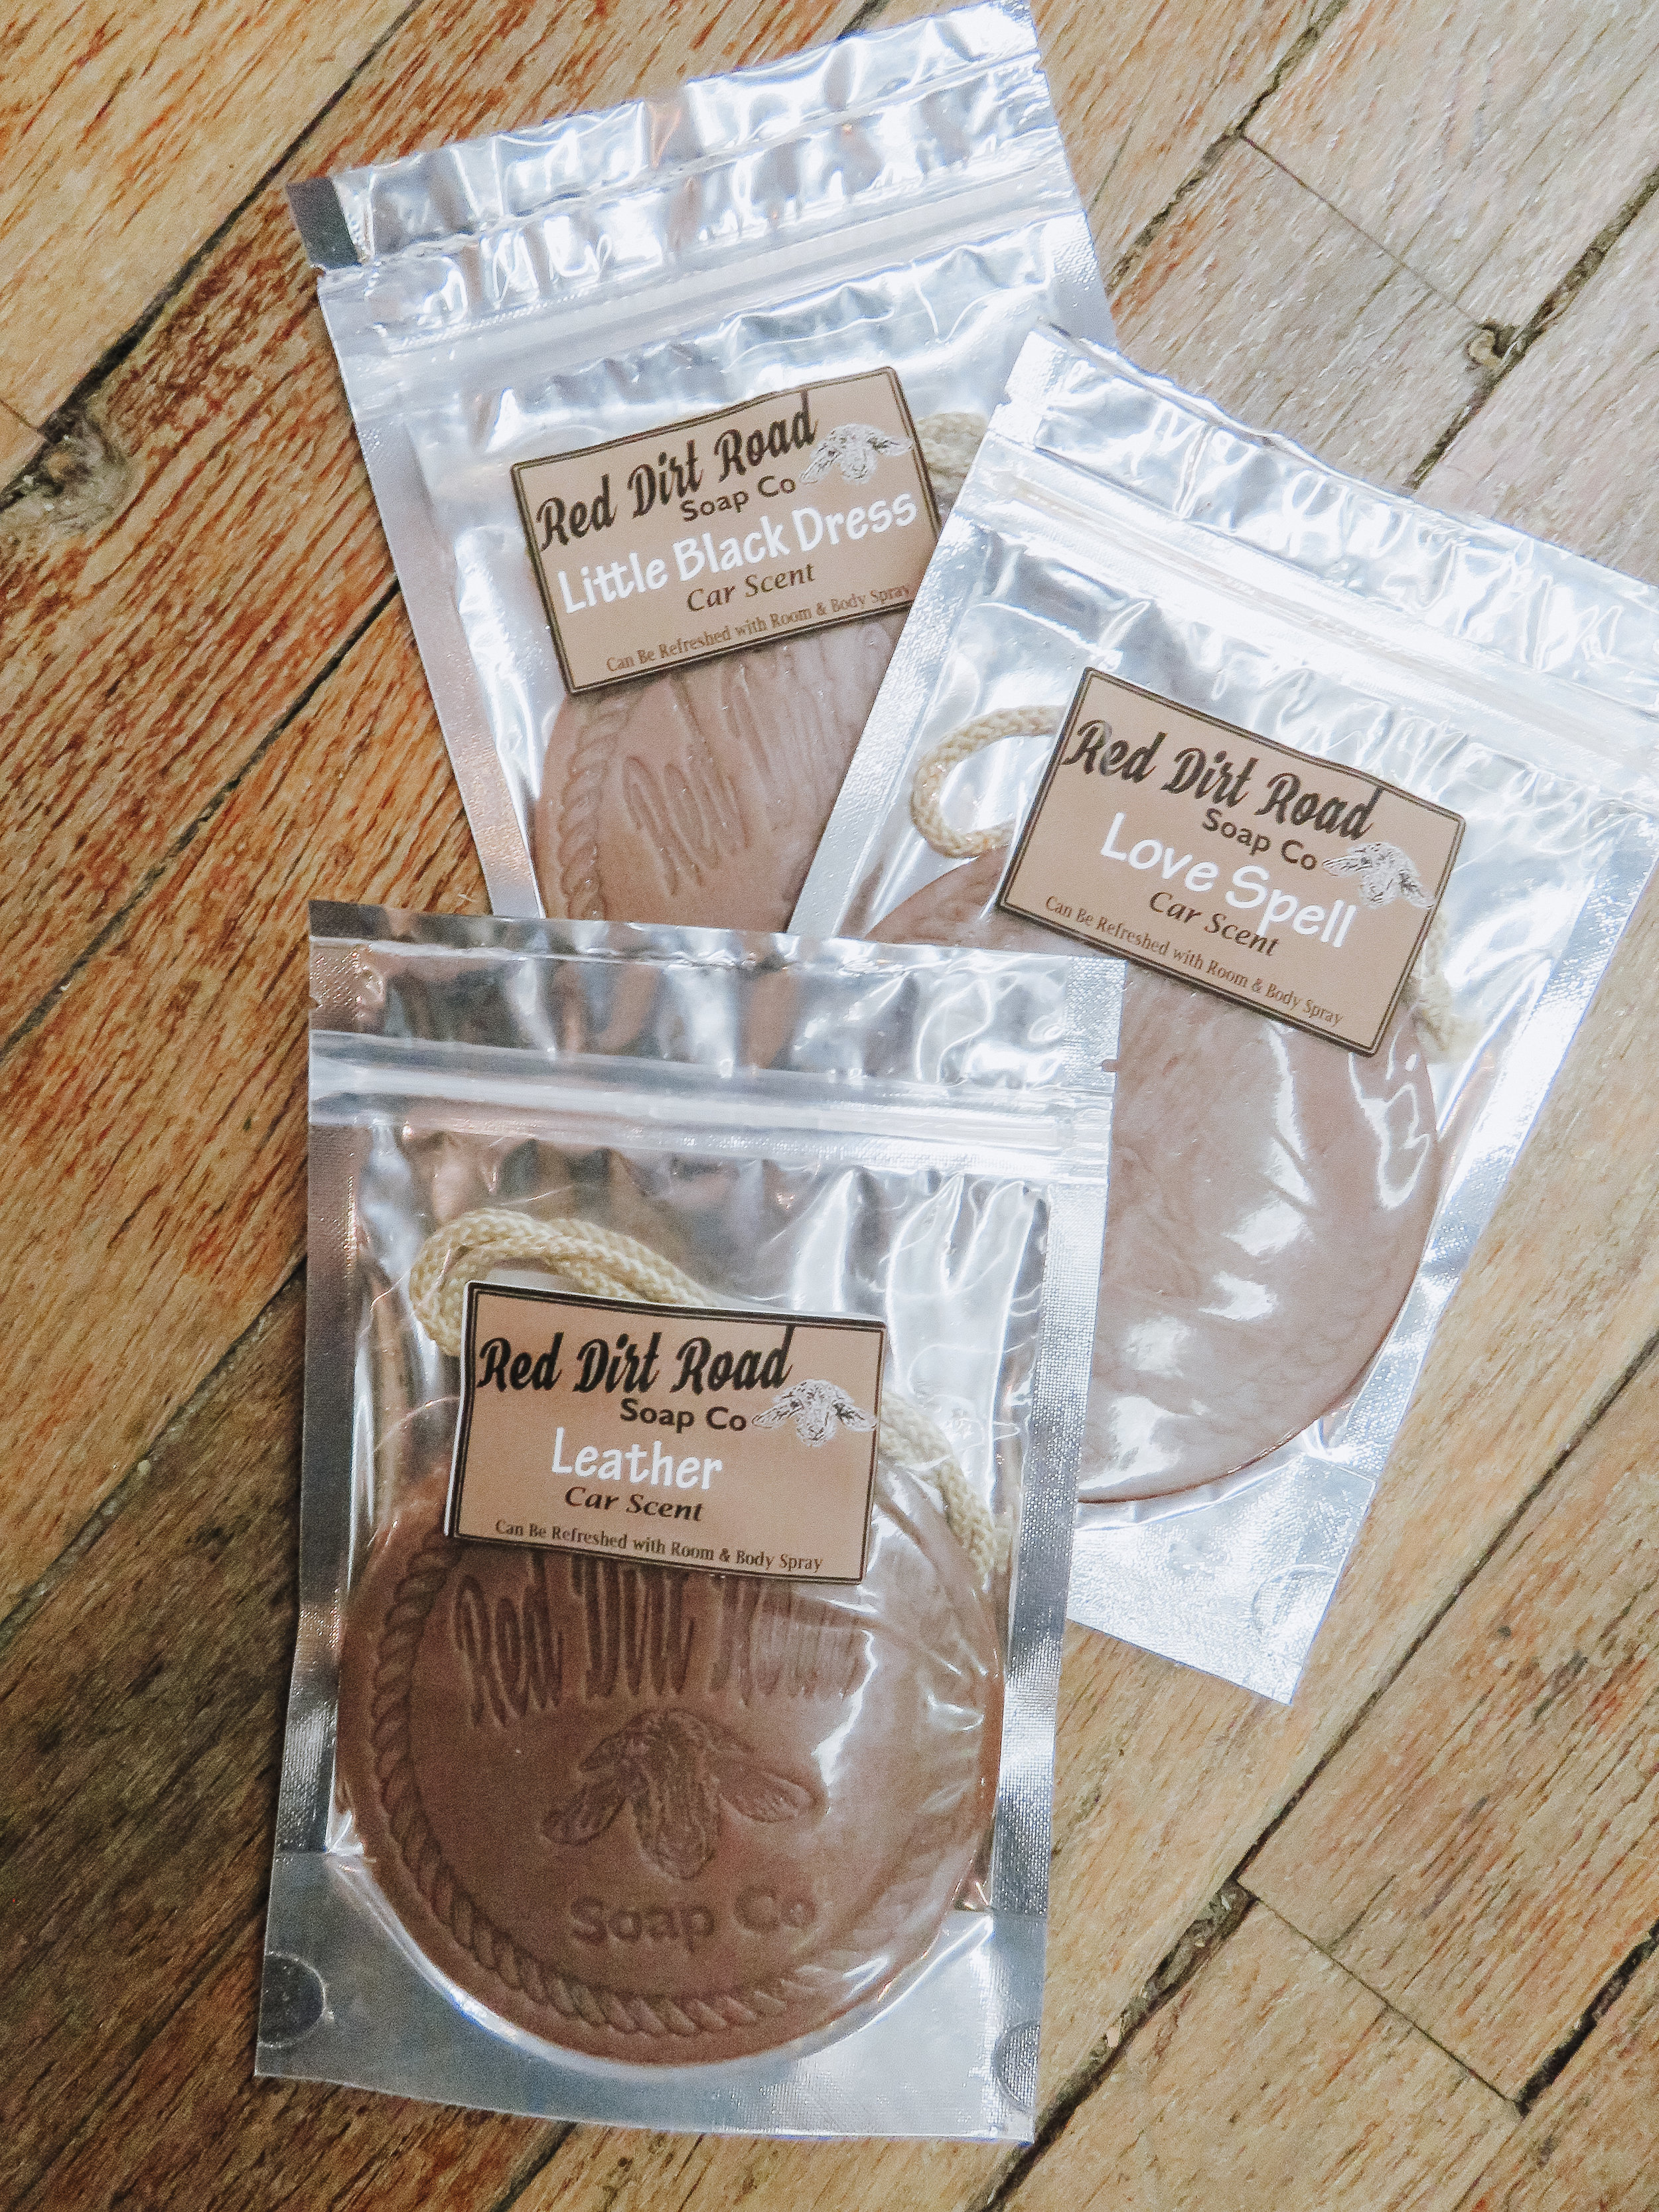 Car Scents - Red Dirt Road Soap Co. carries more than just soap! These car scents come in a variety of scents.